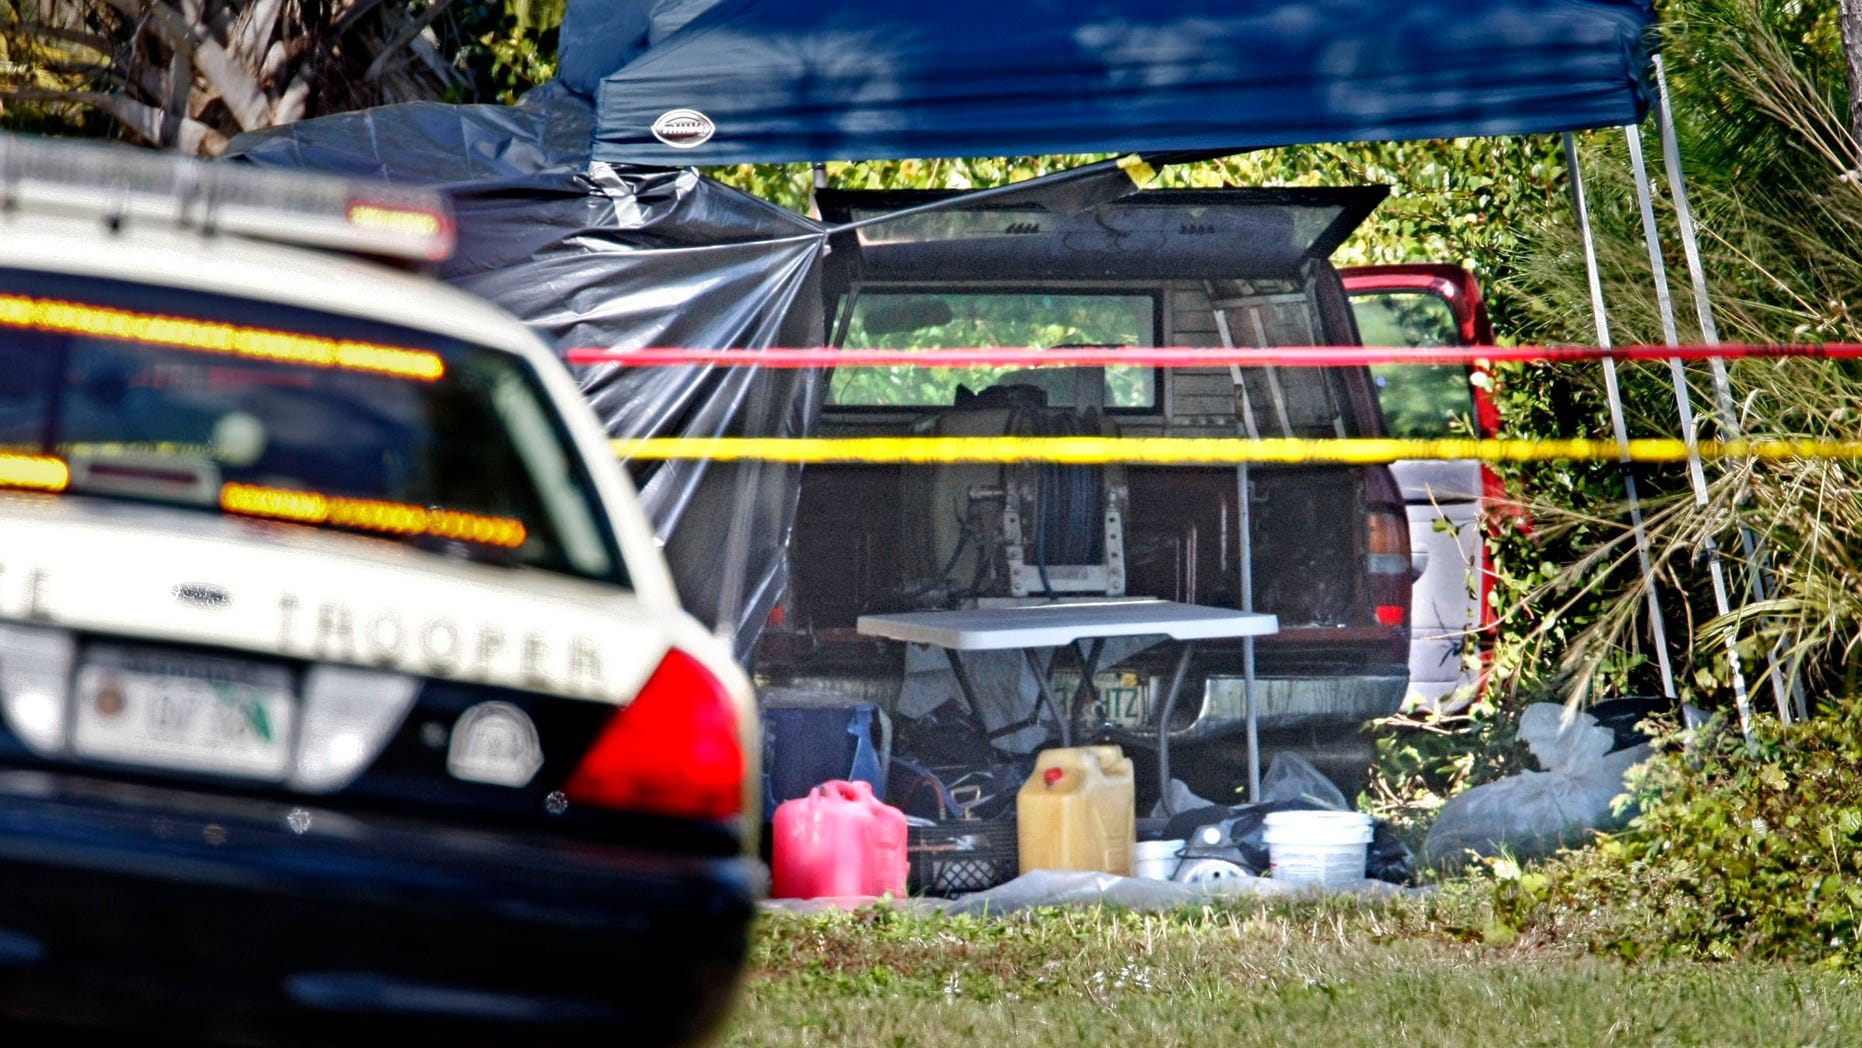 Feb. 16: Authorities investigate Jorge Barahona's pesticide truck after it was found Feb. 14 along the side of Interstate 95 near West Palm Beach, Fla. The badly deteriorated body of Barahona's 10-year-old daughter was discovered in the truck hours after her critically injured twin brother was found having seizures in the front seat, doused in acid by his father, according to officials.